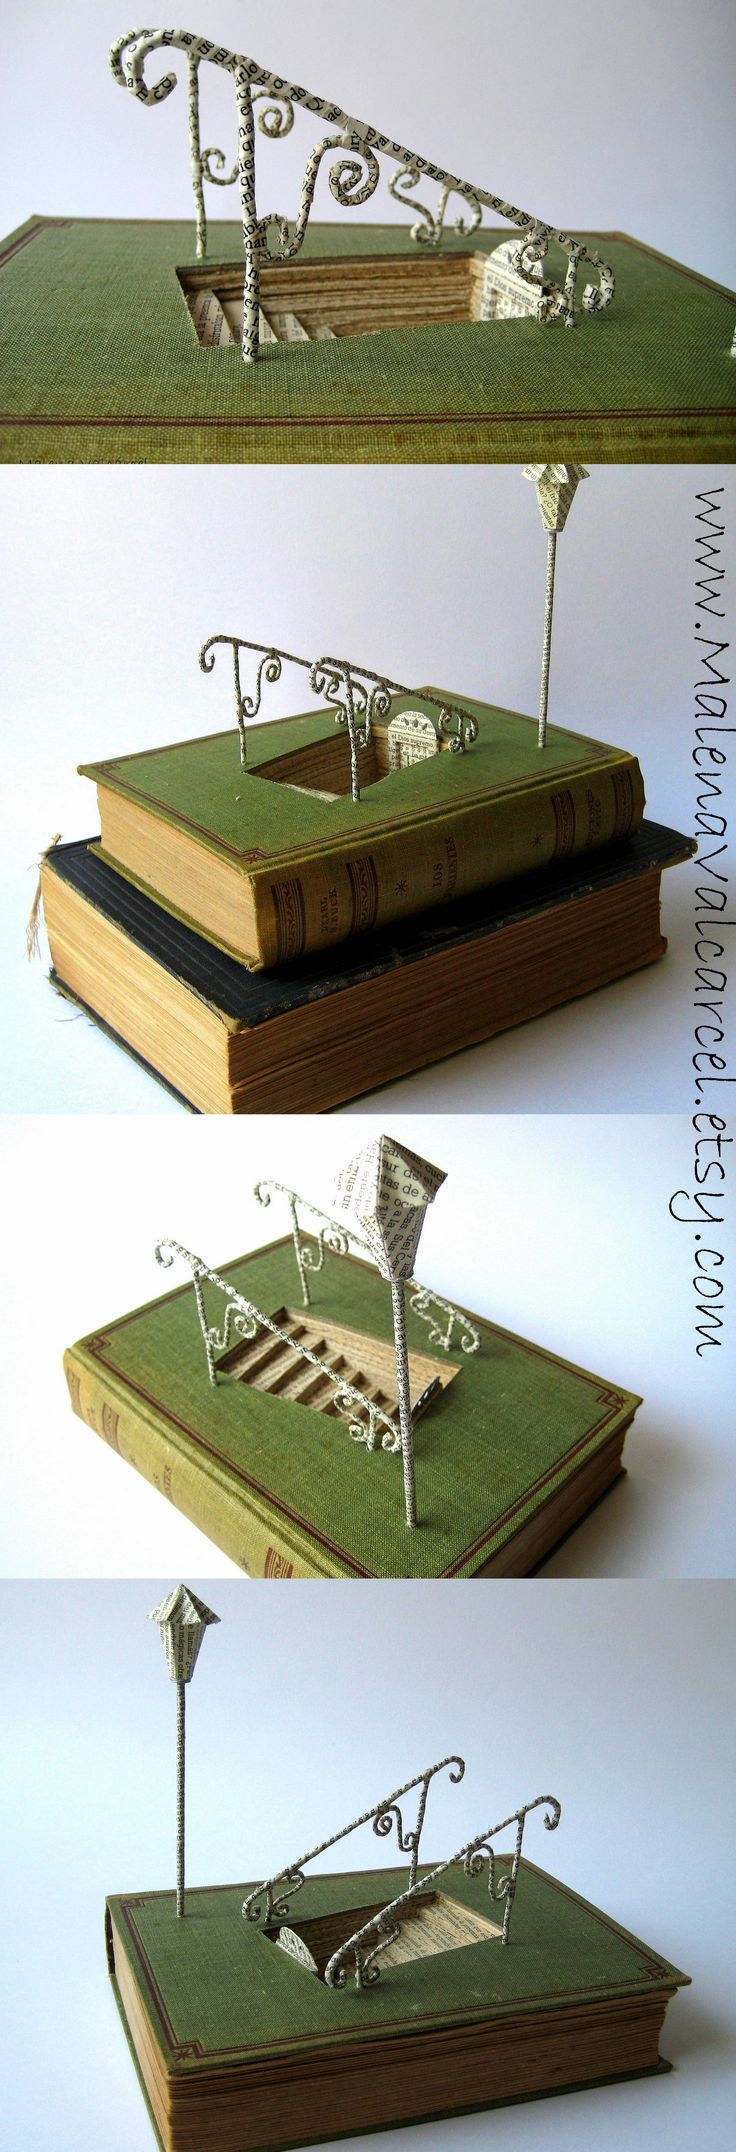 Book art by Malena Valcarcel: malenavalcarcel.etsy.com I love this idea.